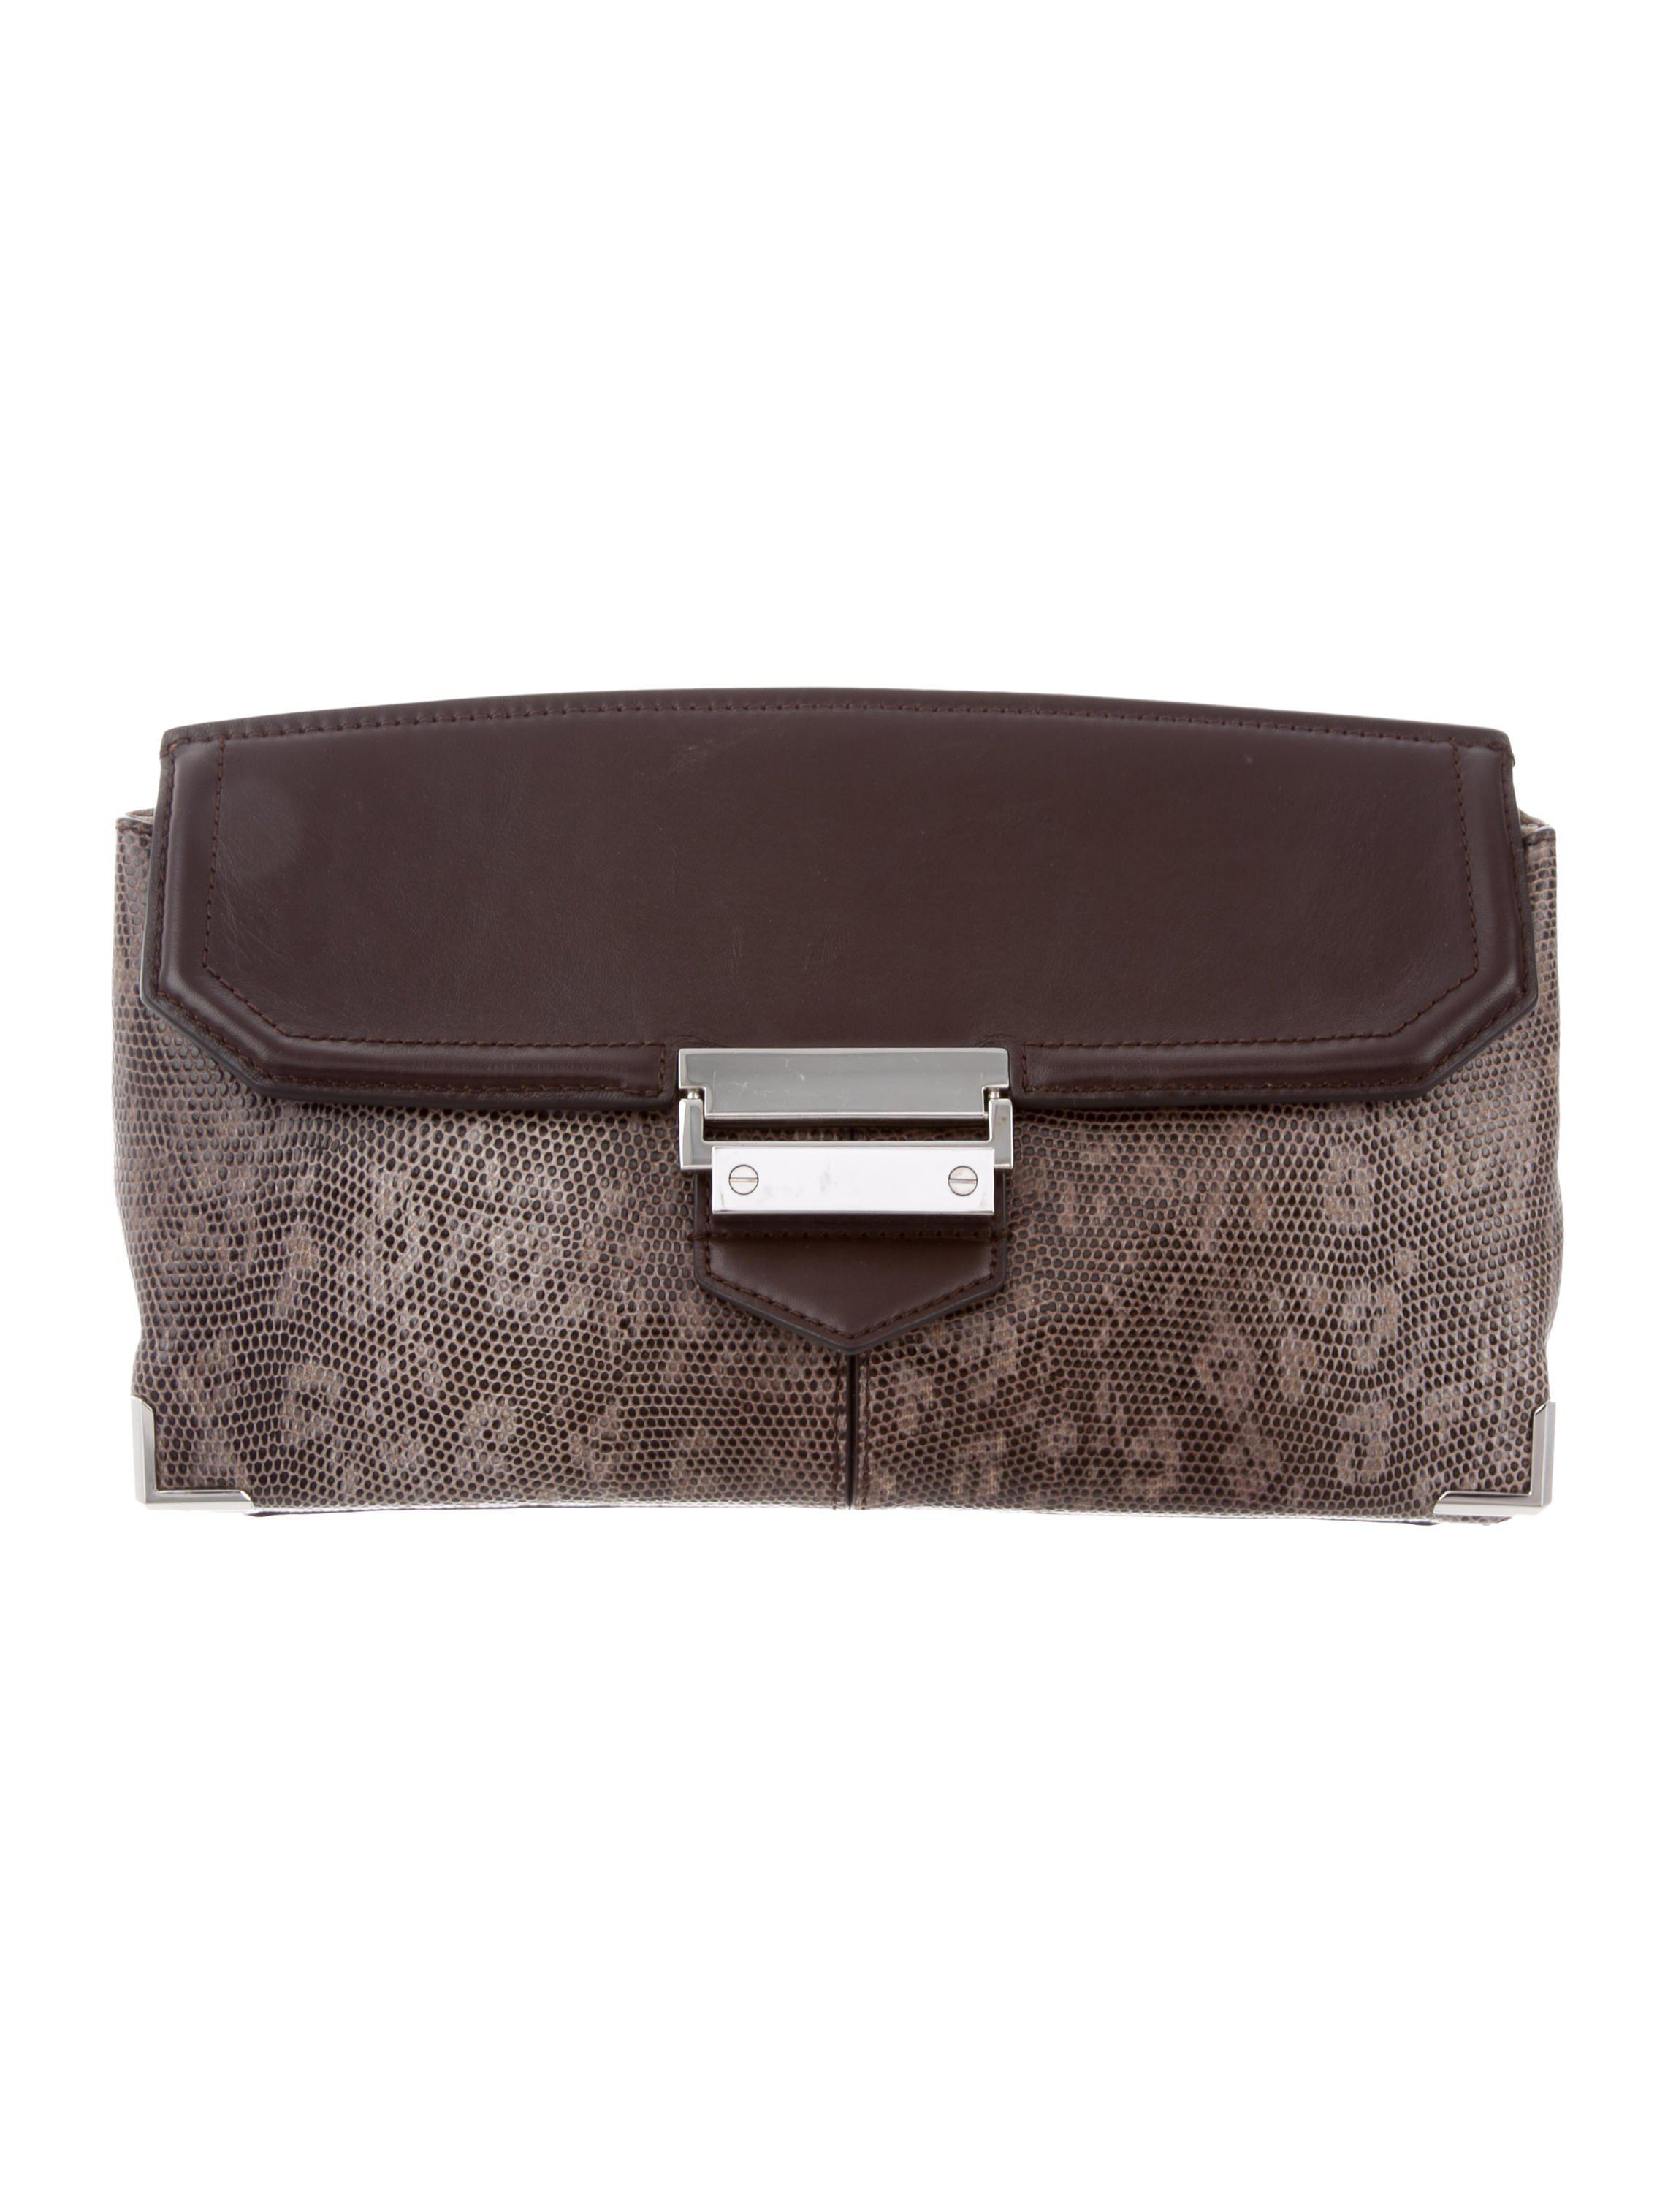 Lyst - Alexander Wang Ring Lizard Clutch Mink in Metallic ac605565d4f2f